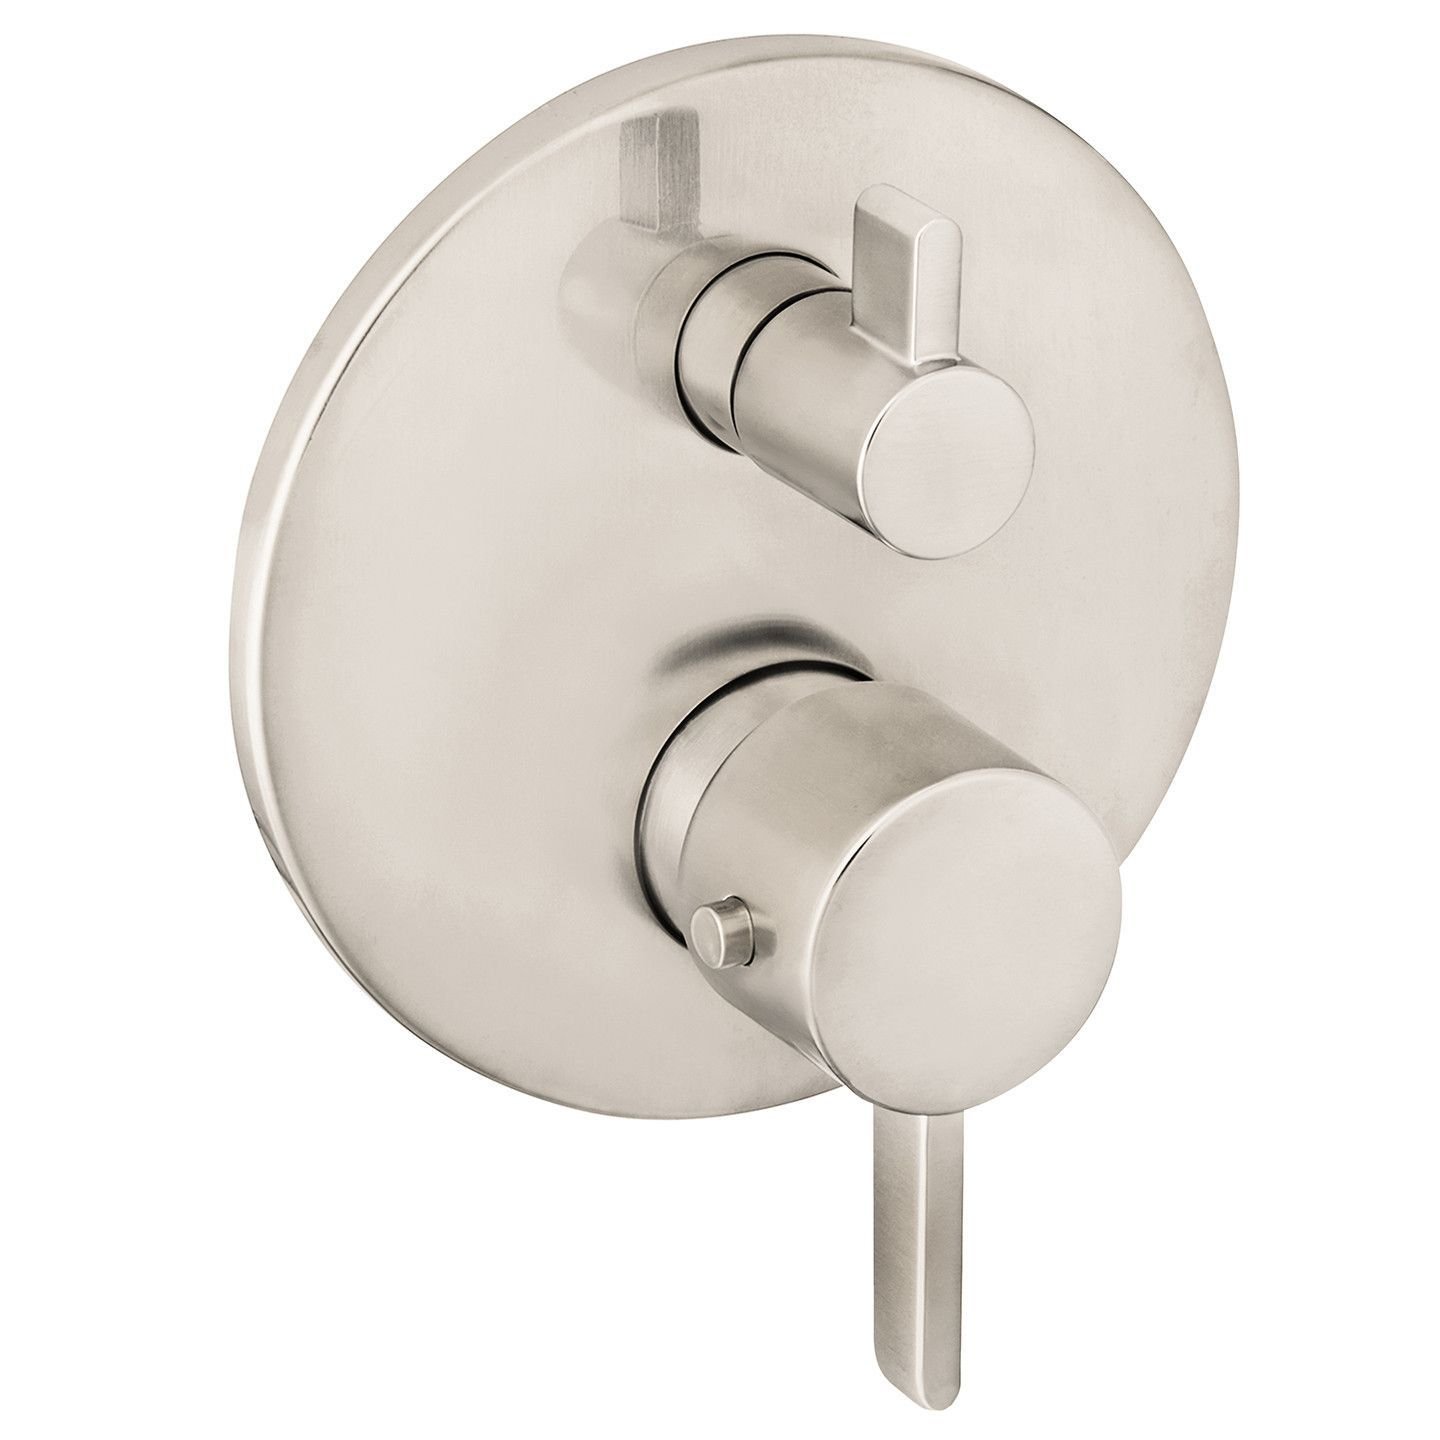 Hansgrohe 04231000 Chrome S Thermostatic Valve Trim with Integrated ...